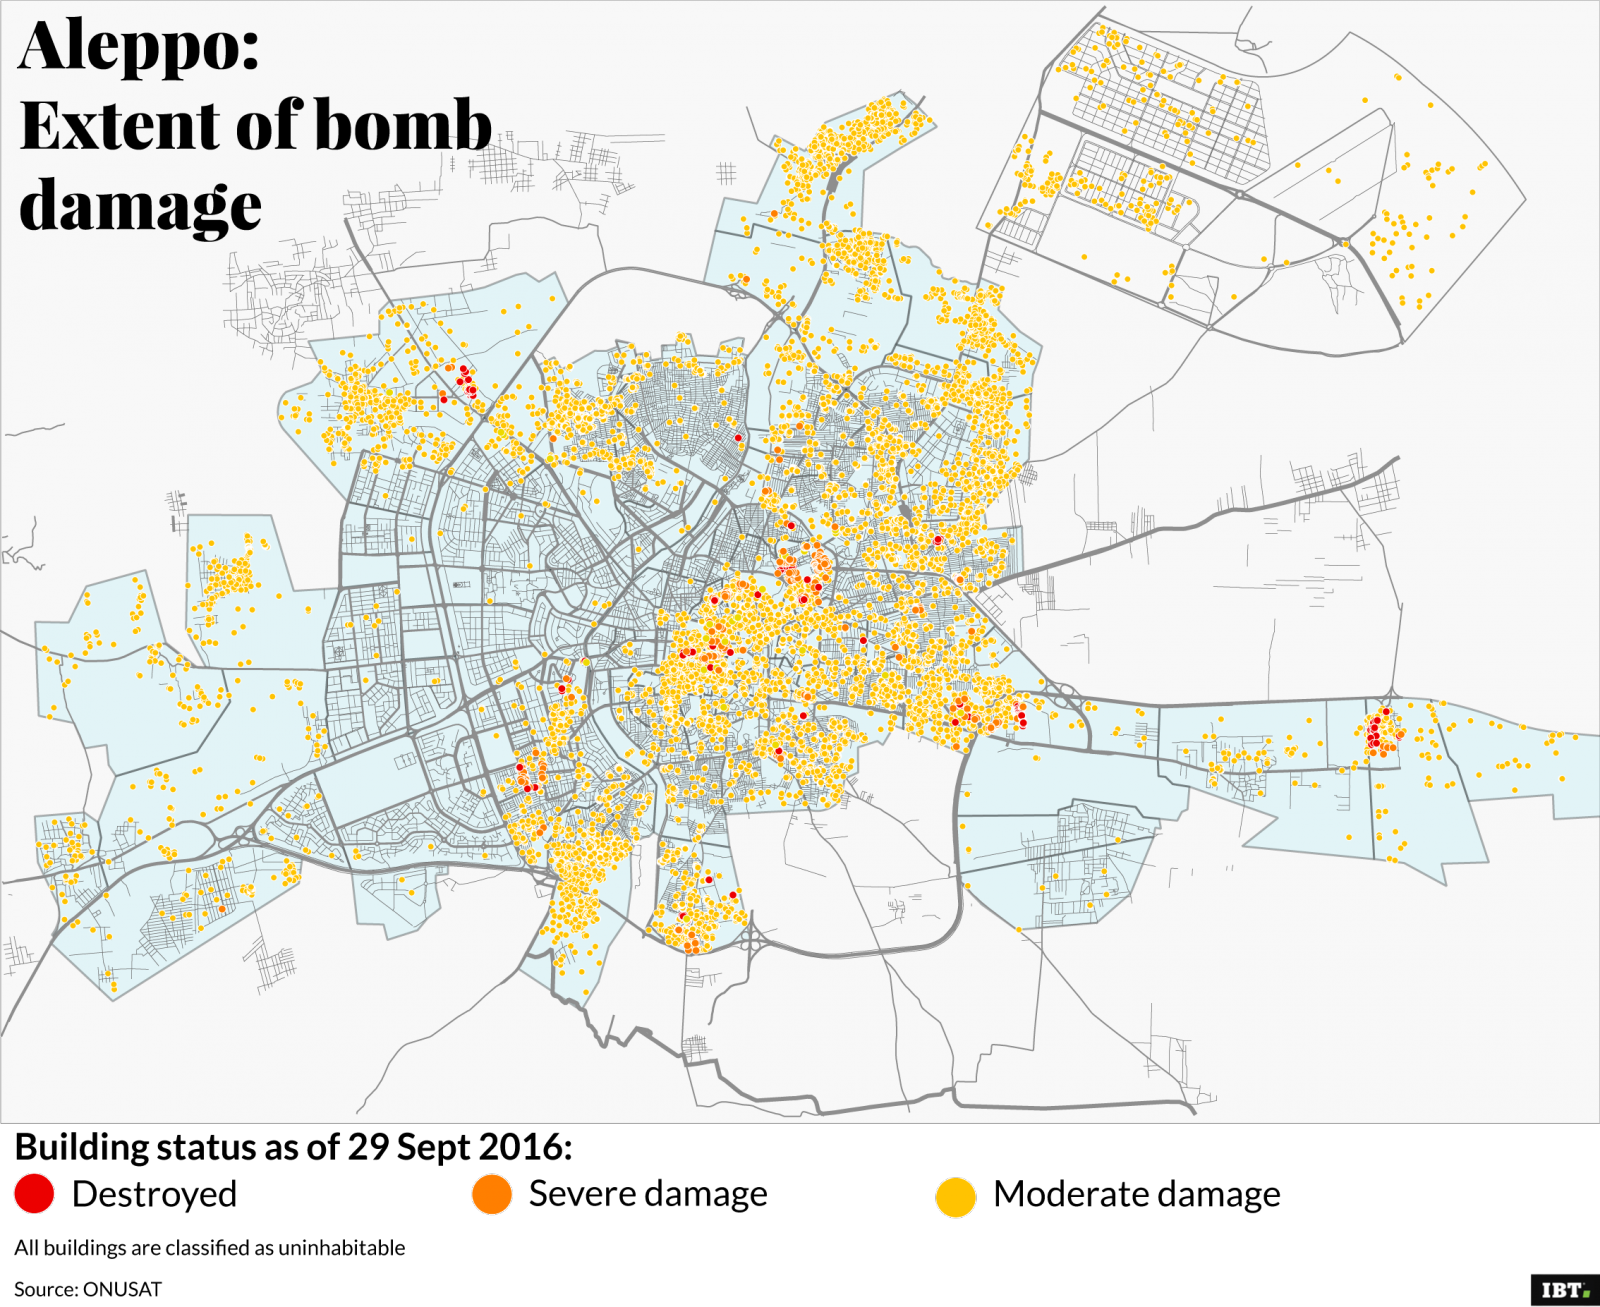 Aleppo: extent of bomb damage